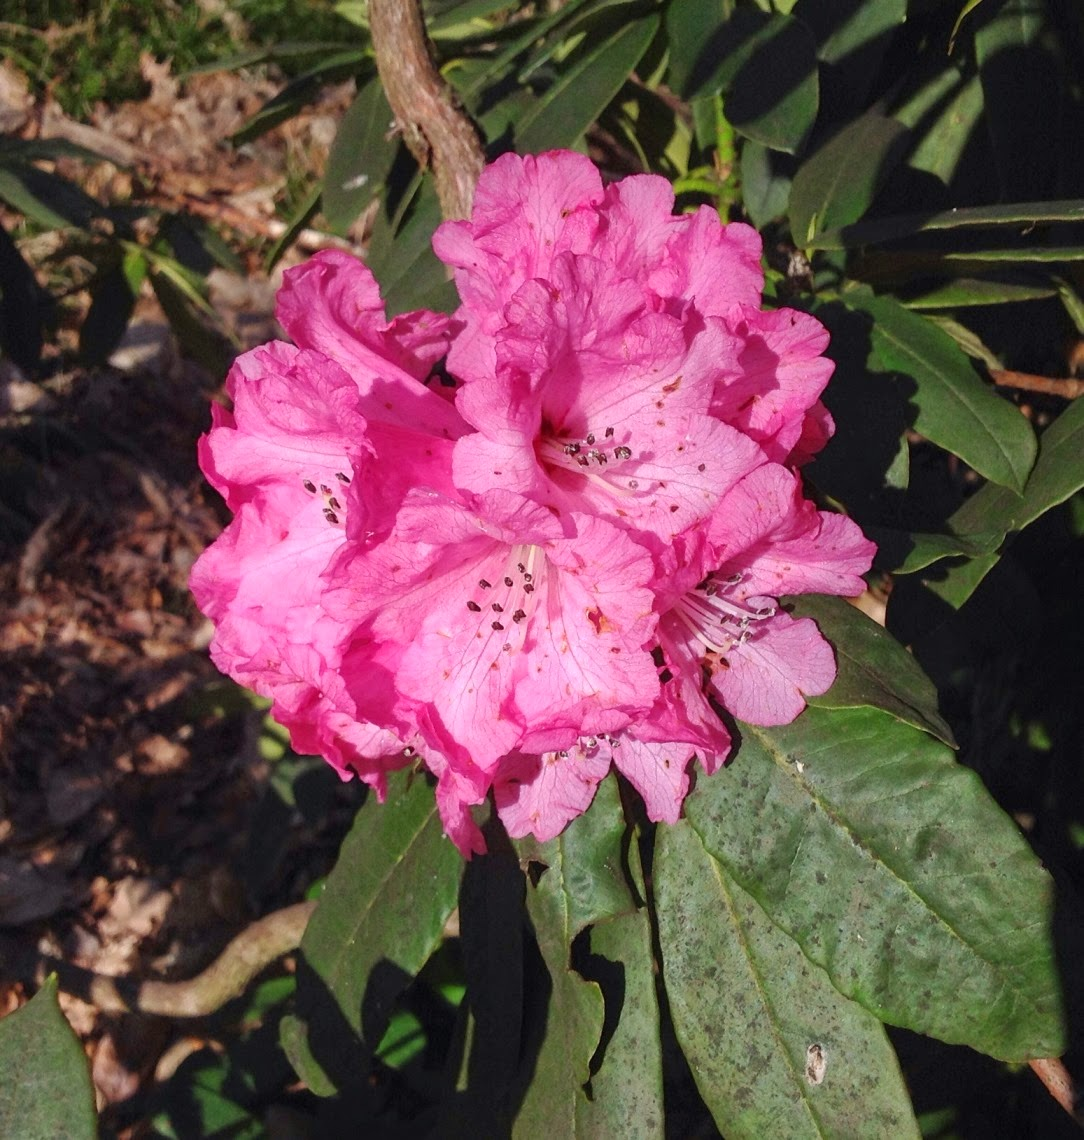 rhododendron senior personals Around new england: rhododendrons flourish  a texas teen's dream came true when she took her senior photos at gillette  dating in a rural area is.